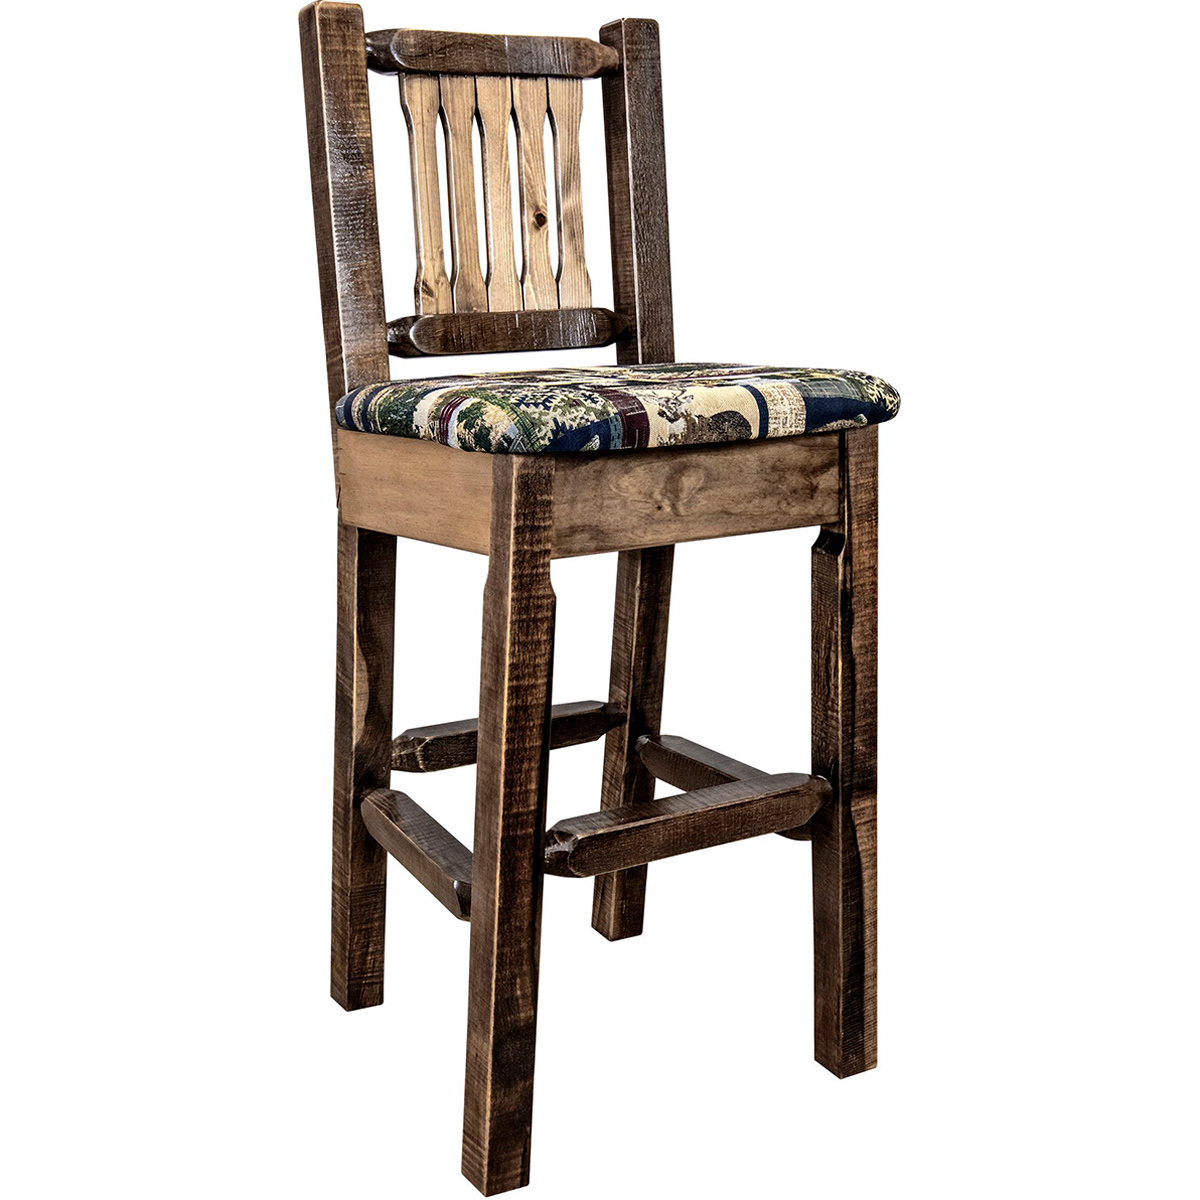 Ranchman's Counter Stool with Woodland Upholstery, Stain & Clear Lacquer Finish